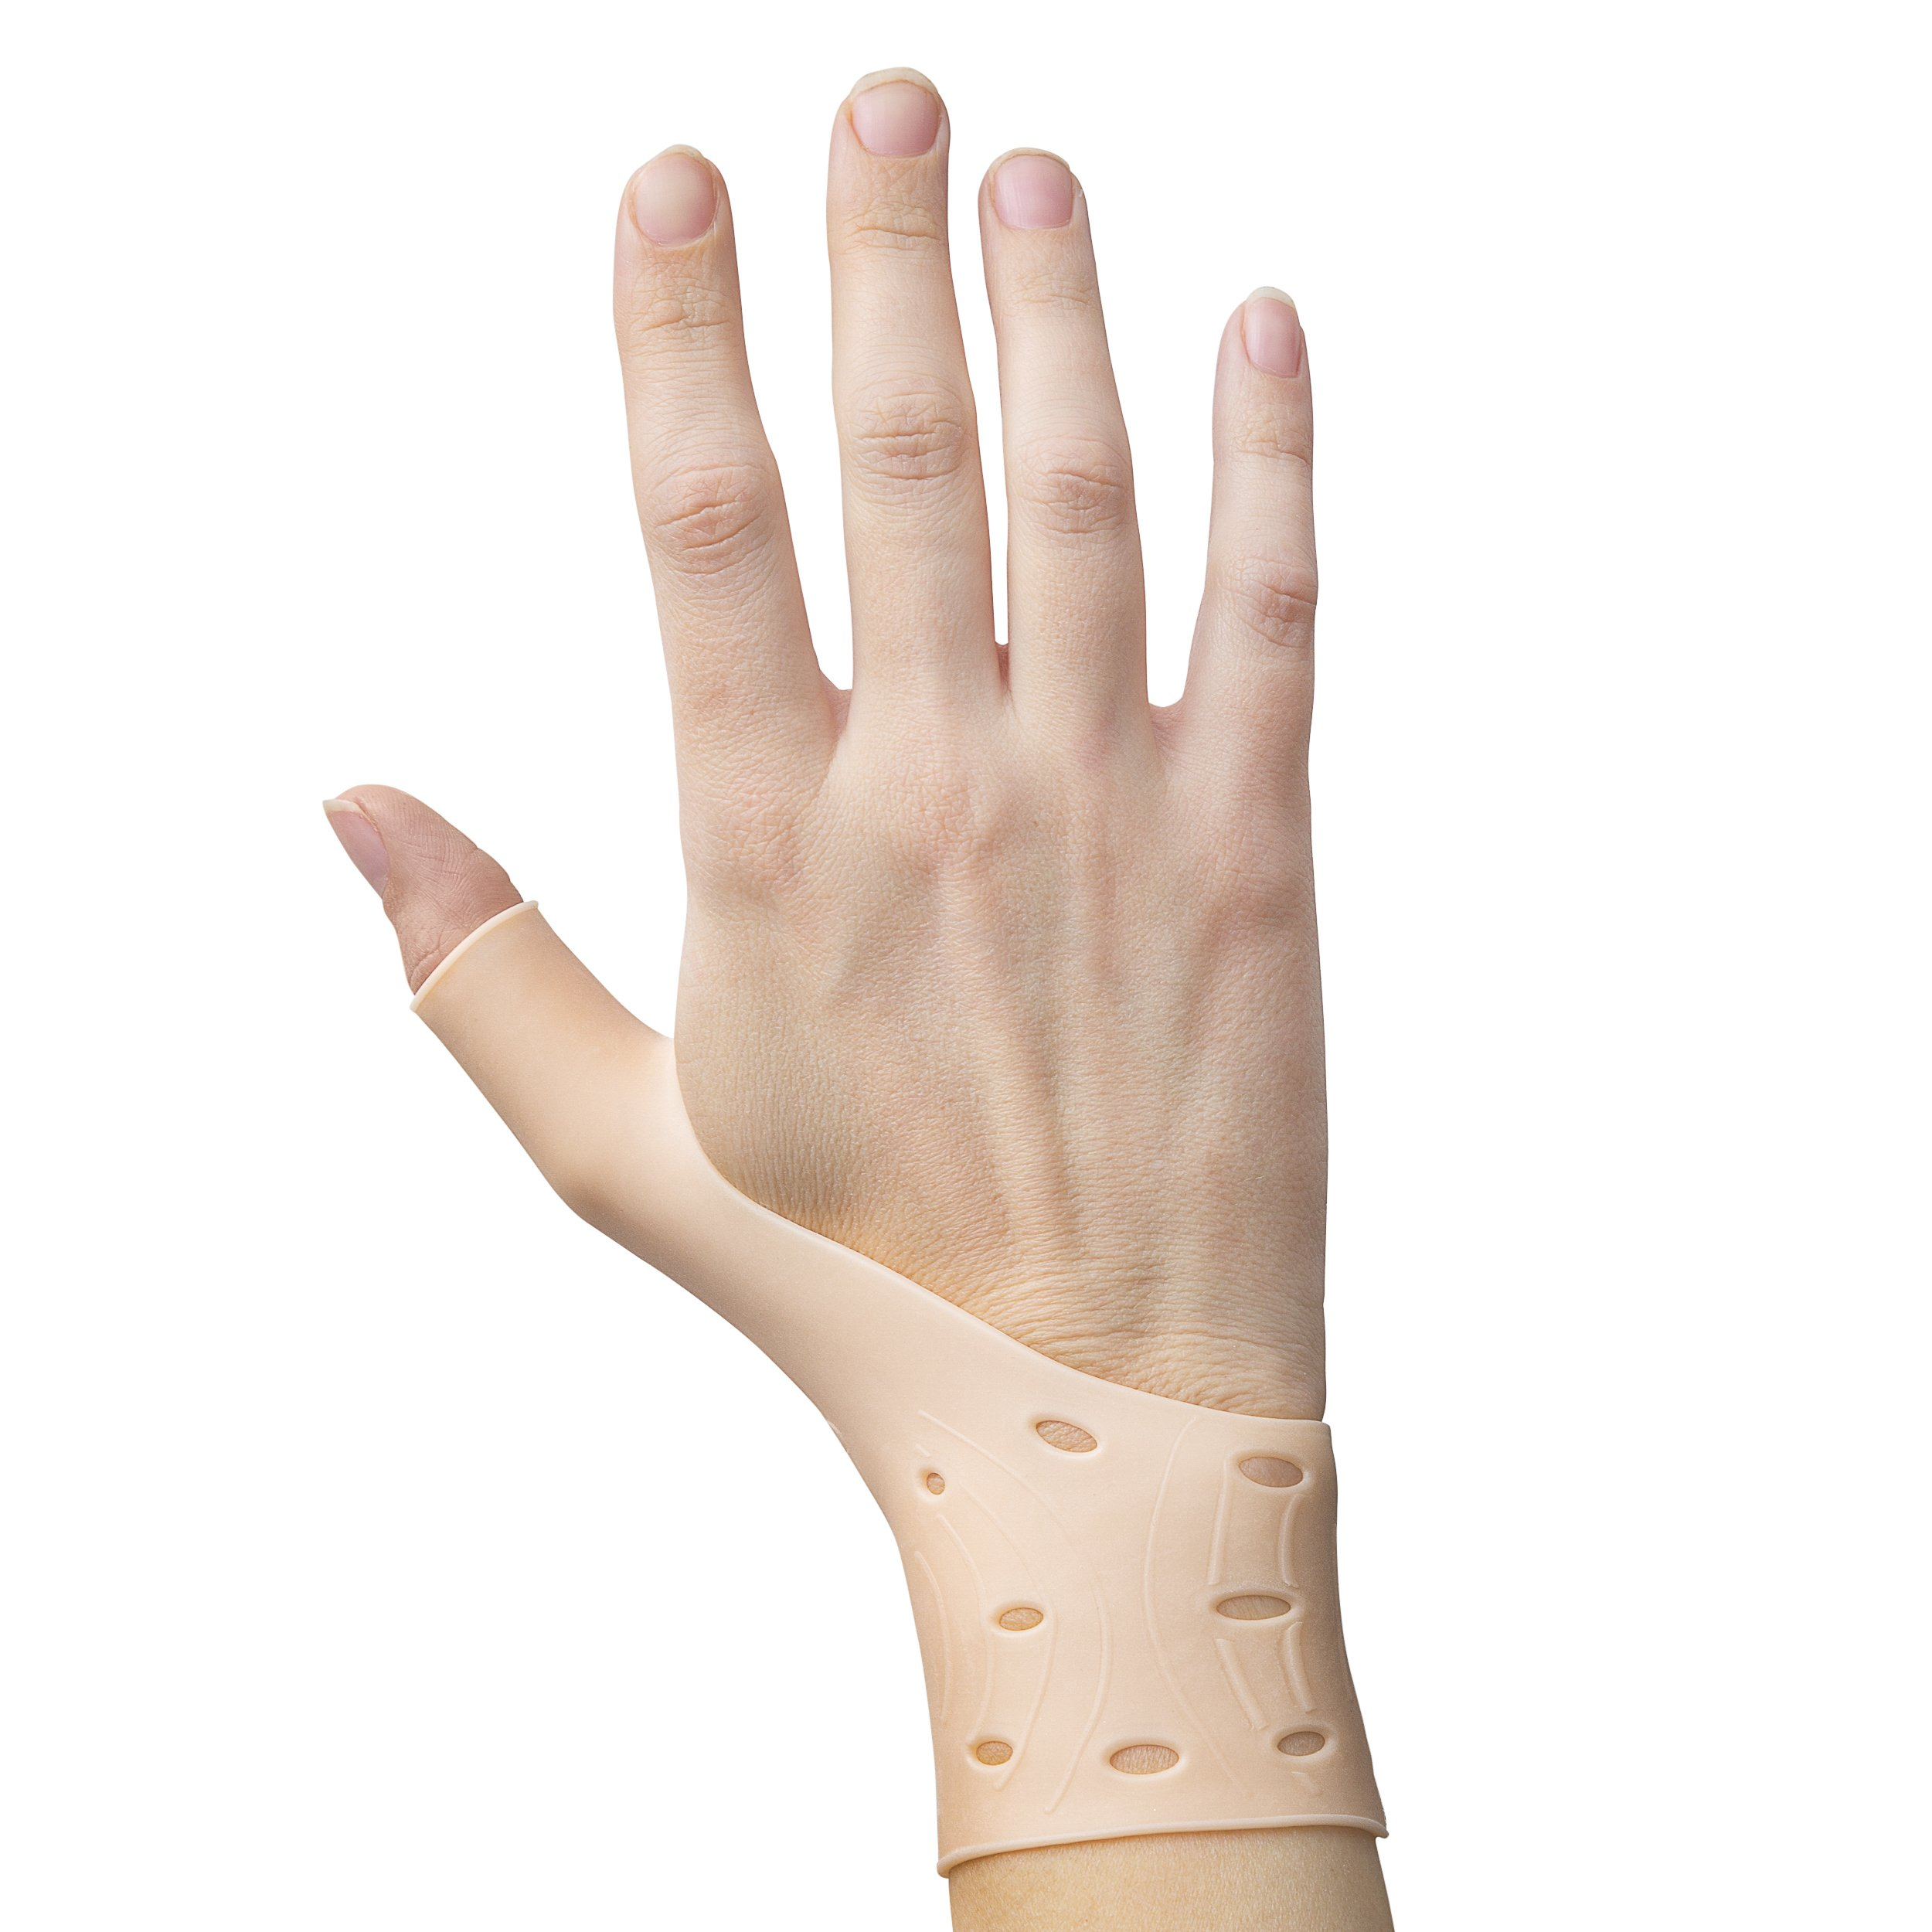 2 Breathable Gel Wrist & Thumb Support Braces for Right & Left Hand | Proven to Relieve Wrist & Thumb Pain Including Arthritis, Rheumatism, Carpal Tunnel | Soft, Comfortable & Light Weight by Excelyfe (Image #4)